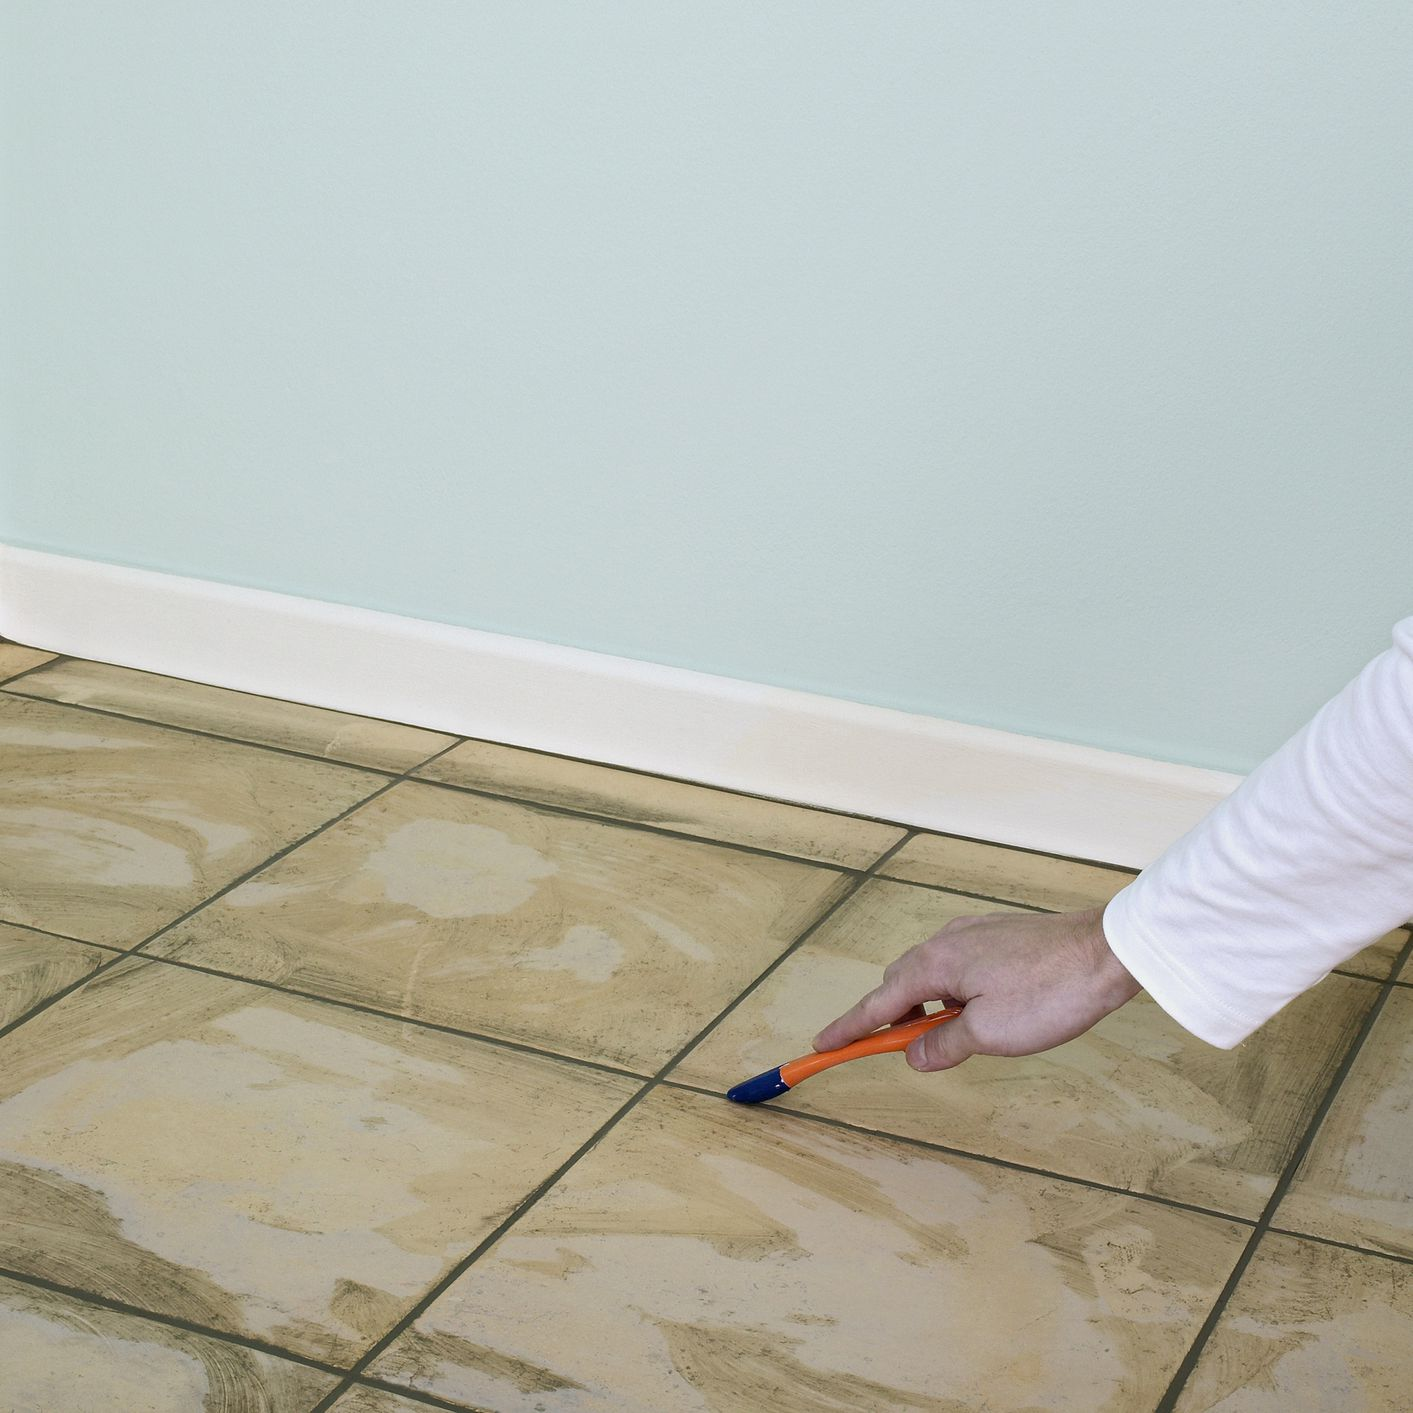 How To Change Grout Color Darker Or Lighter